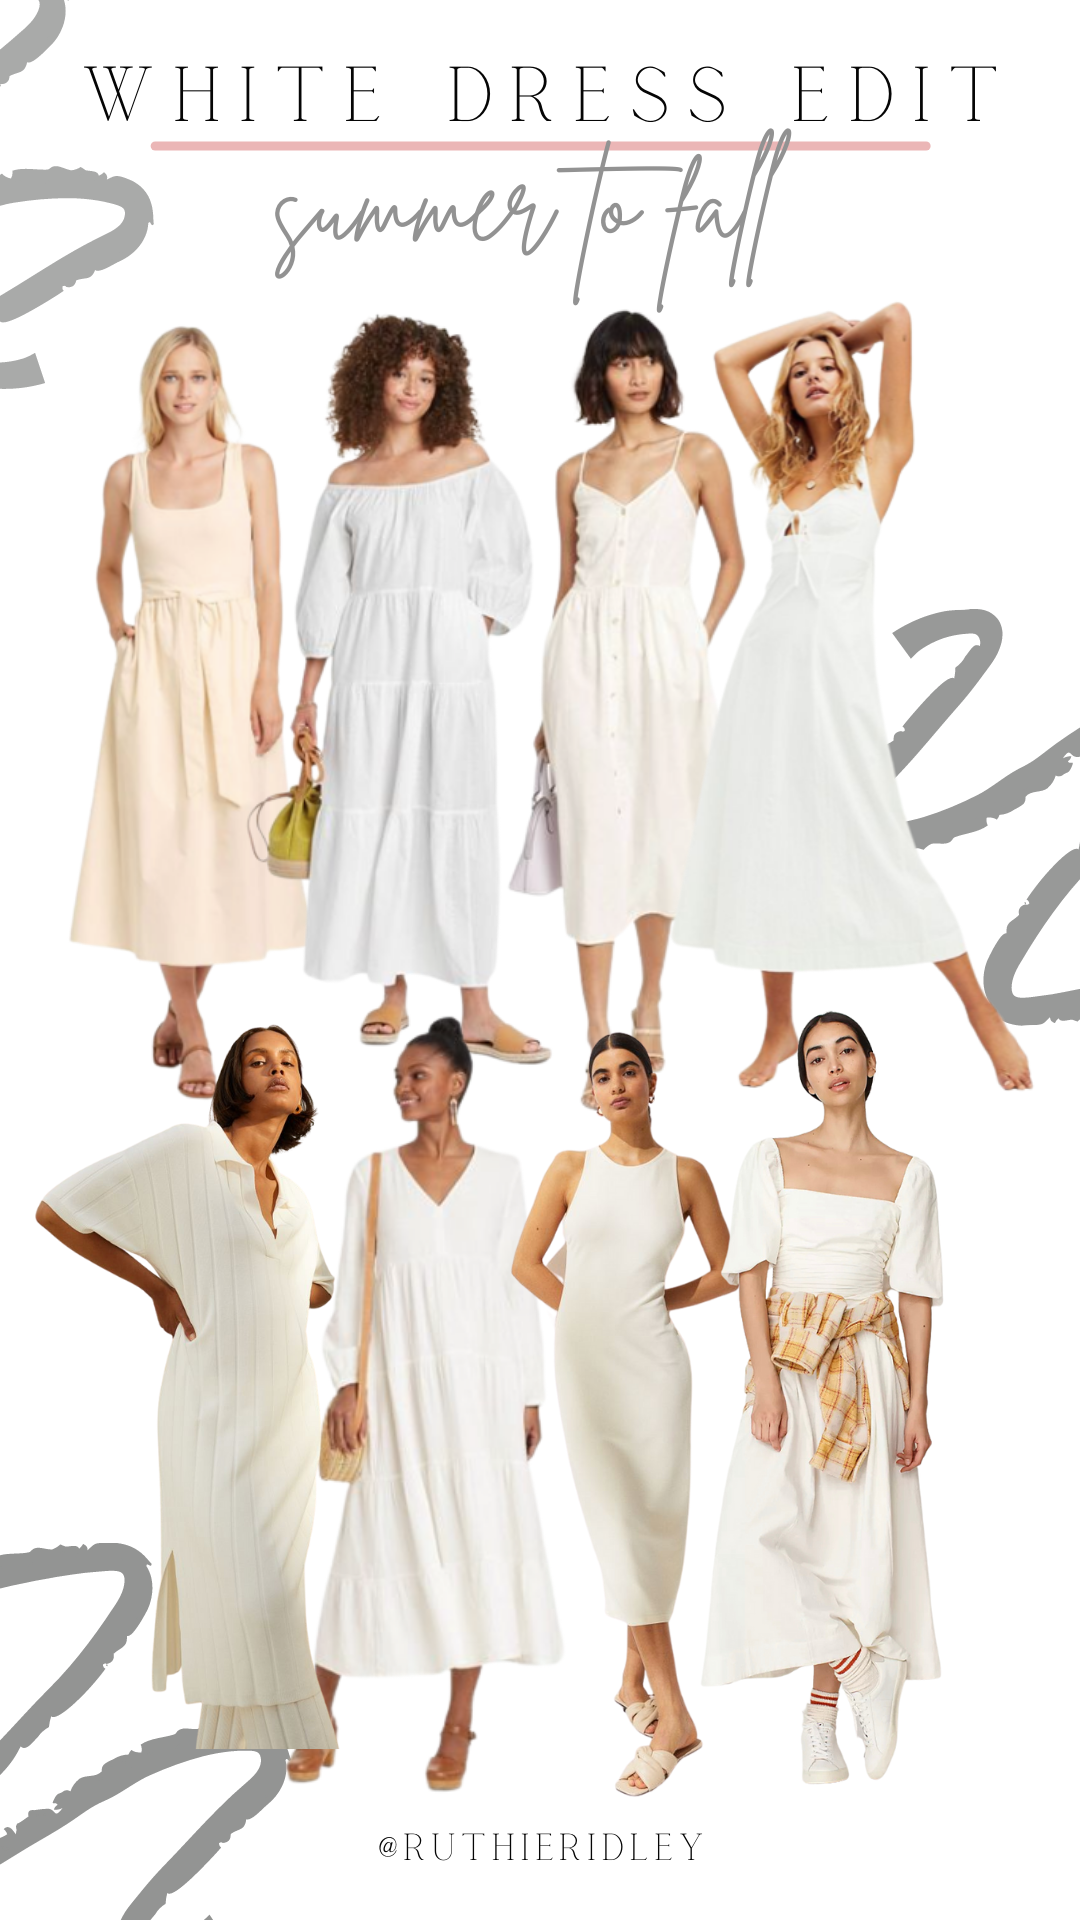 Ruthie Ridley Blog White Dress Edit: Summer To Fall